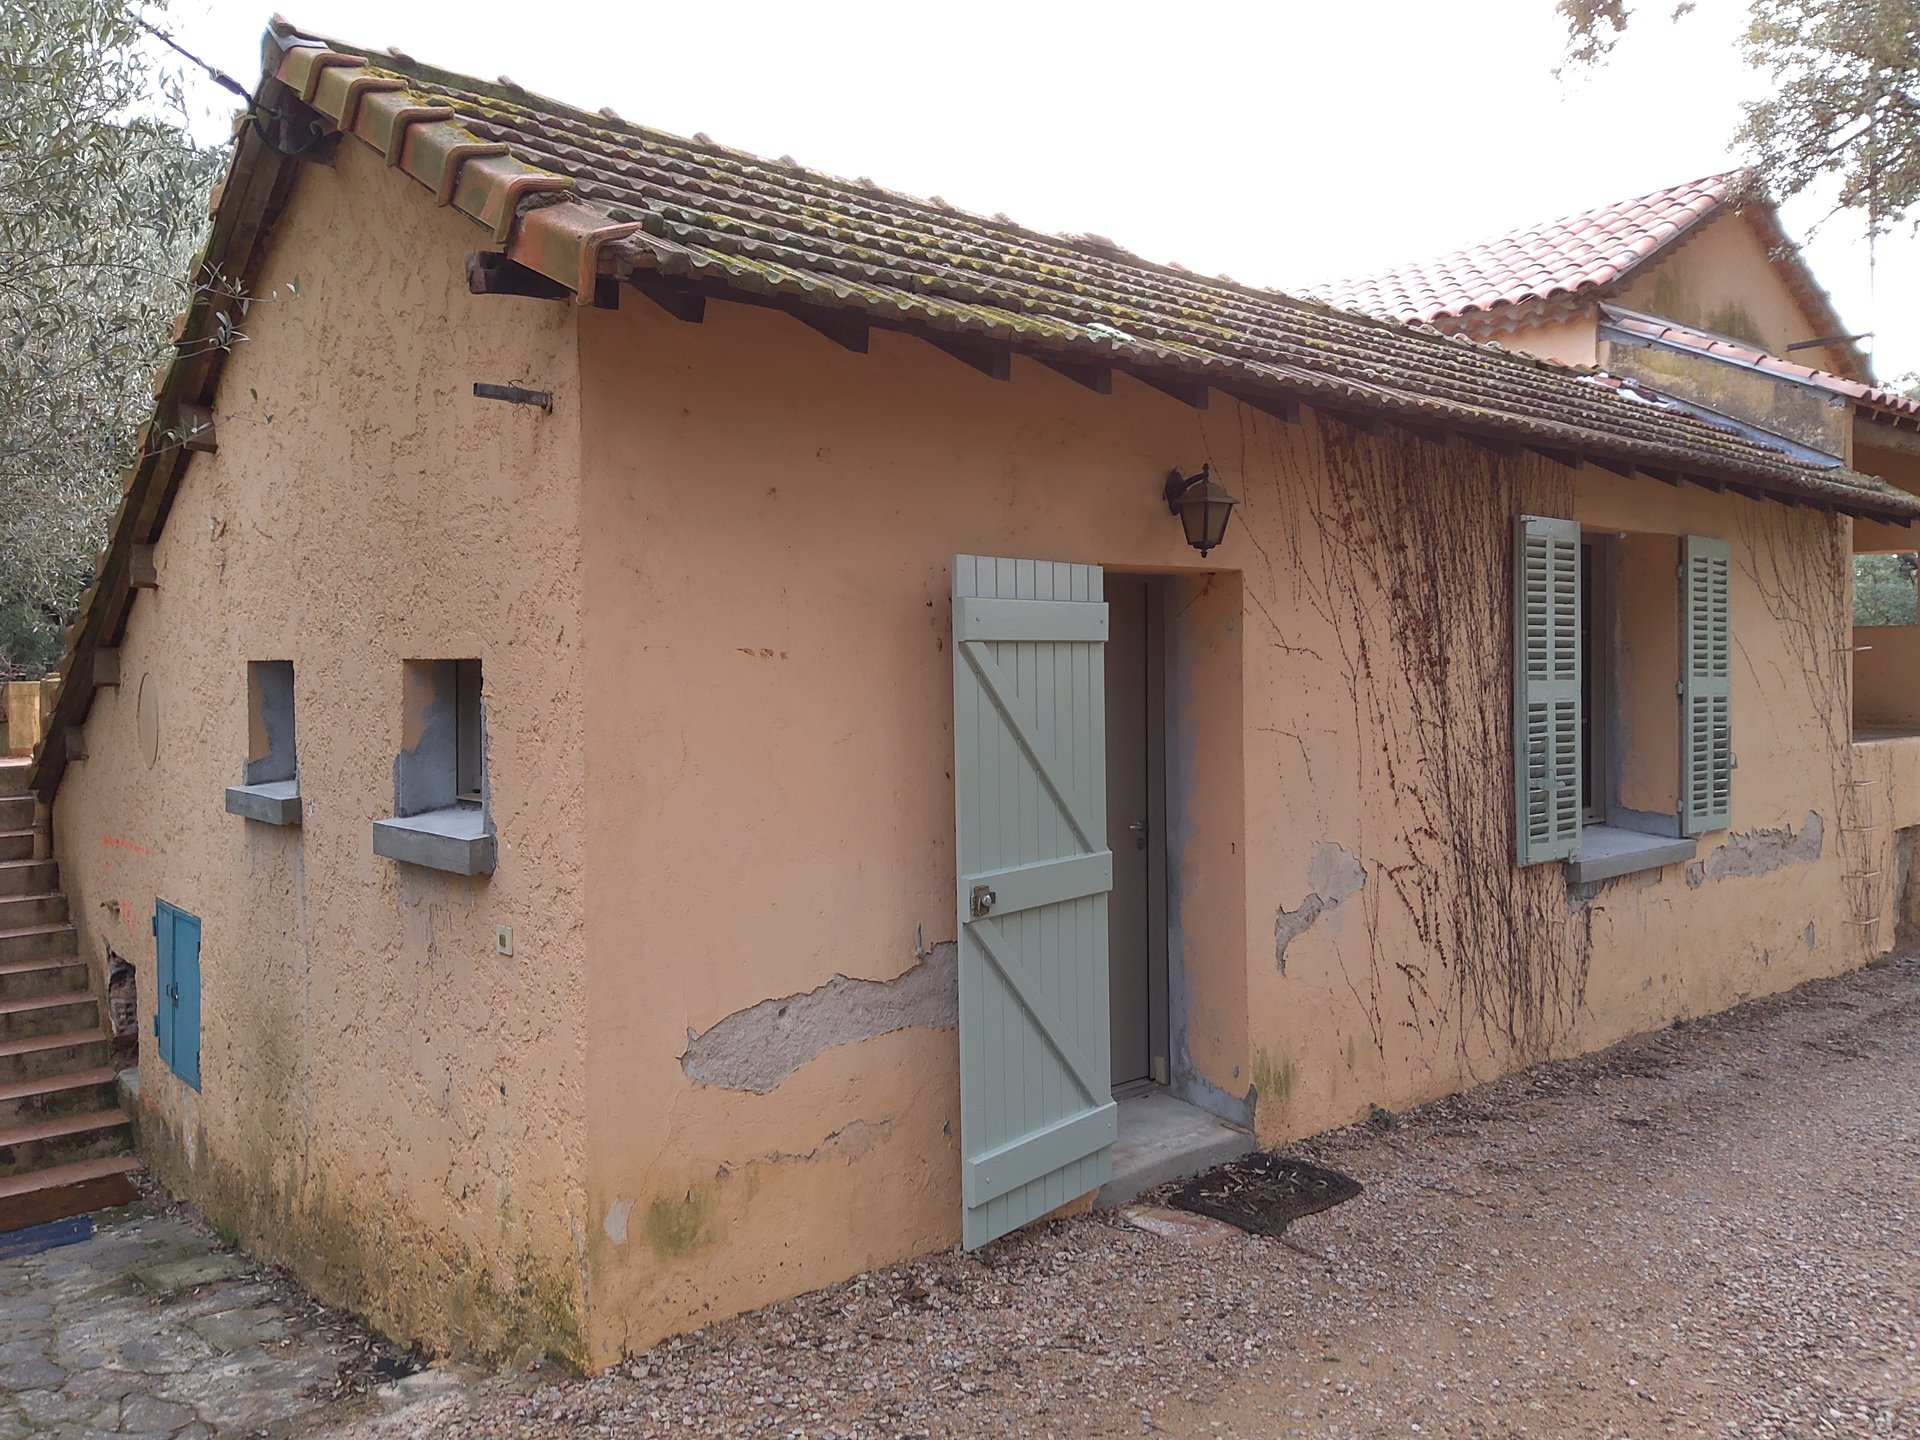 CAVALAIRE-4 kms from the sea, building to renovate into a family house or into 3 apartments